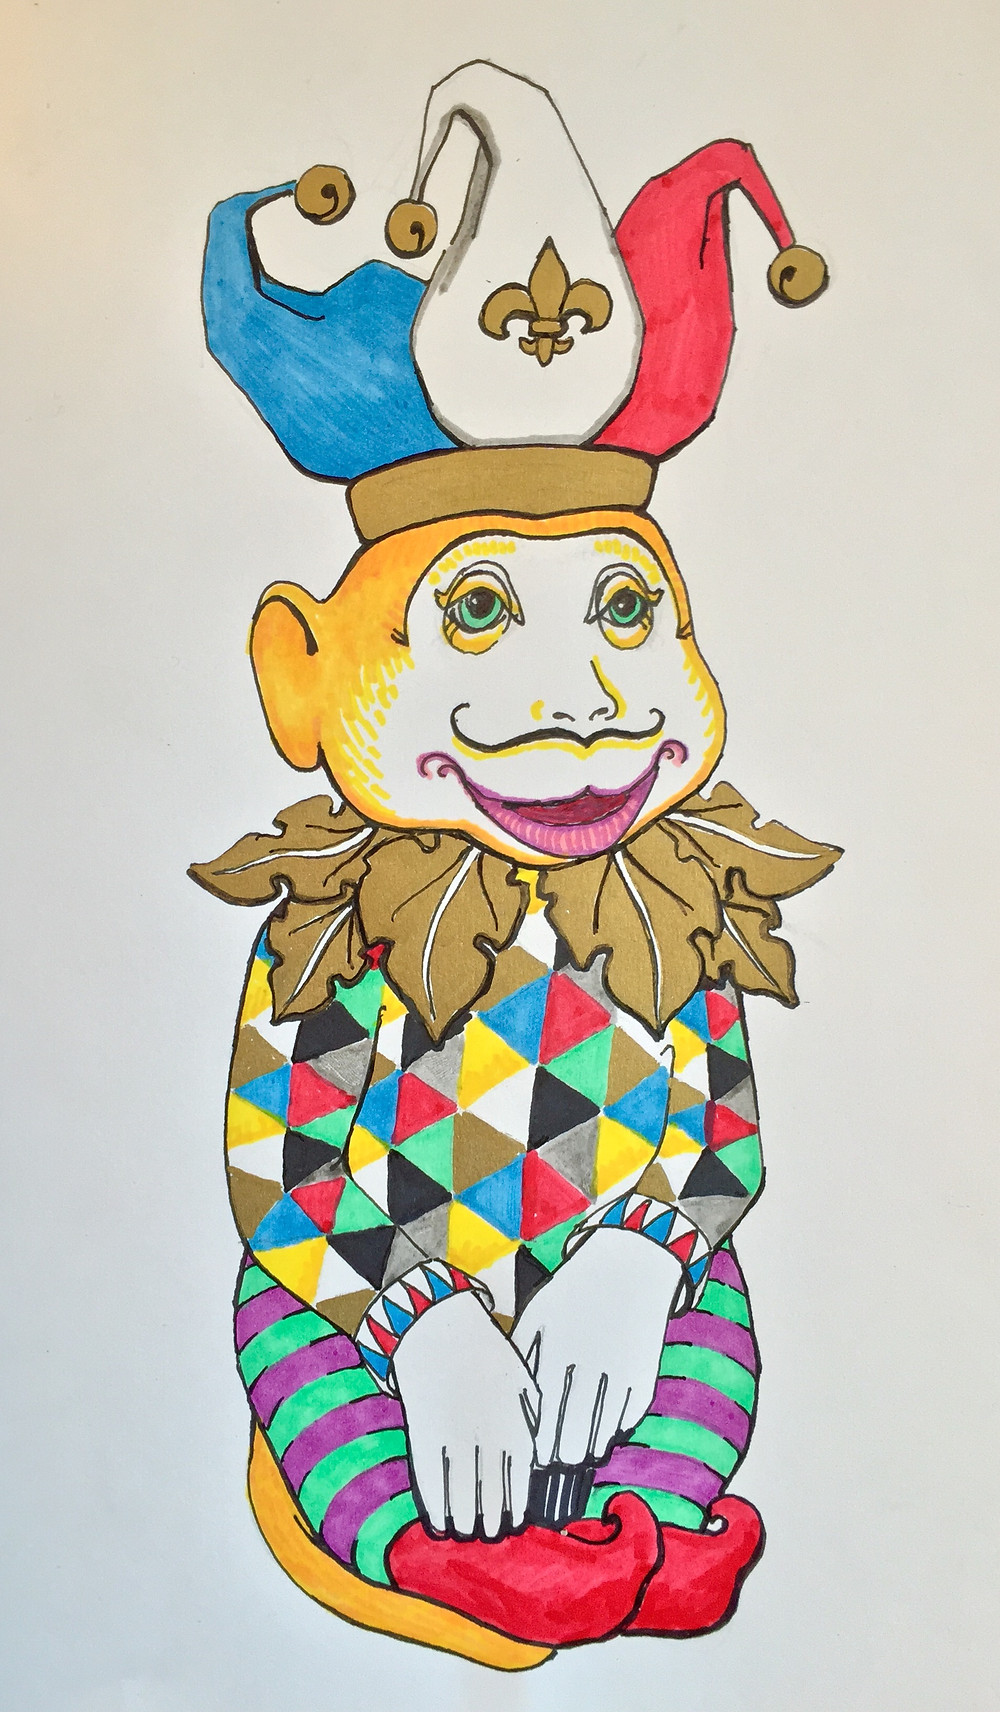 Concept drawing for the 2016 Year of the Monkey Design: The Jovial Jester